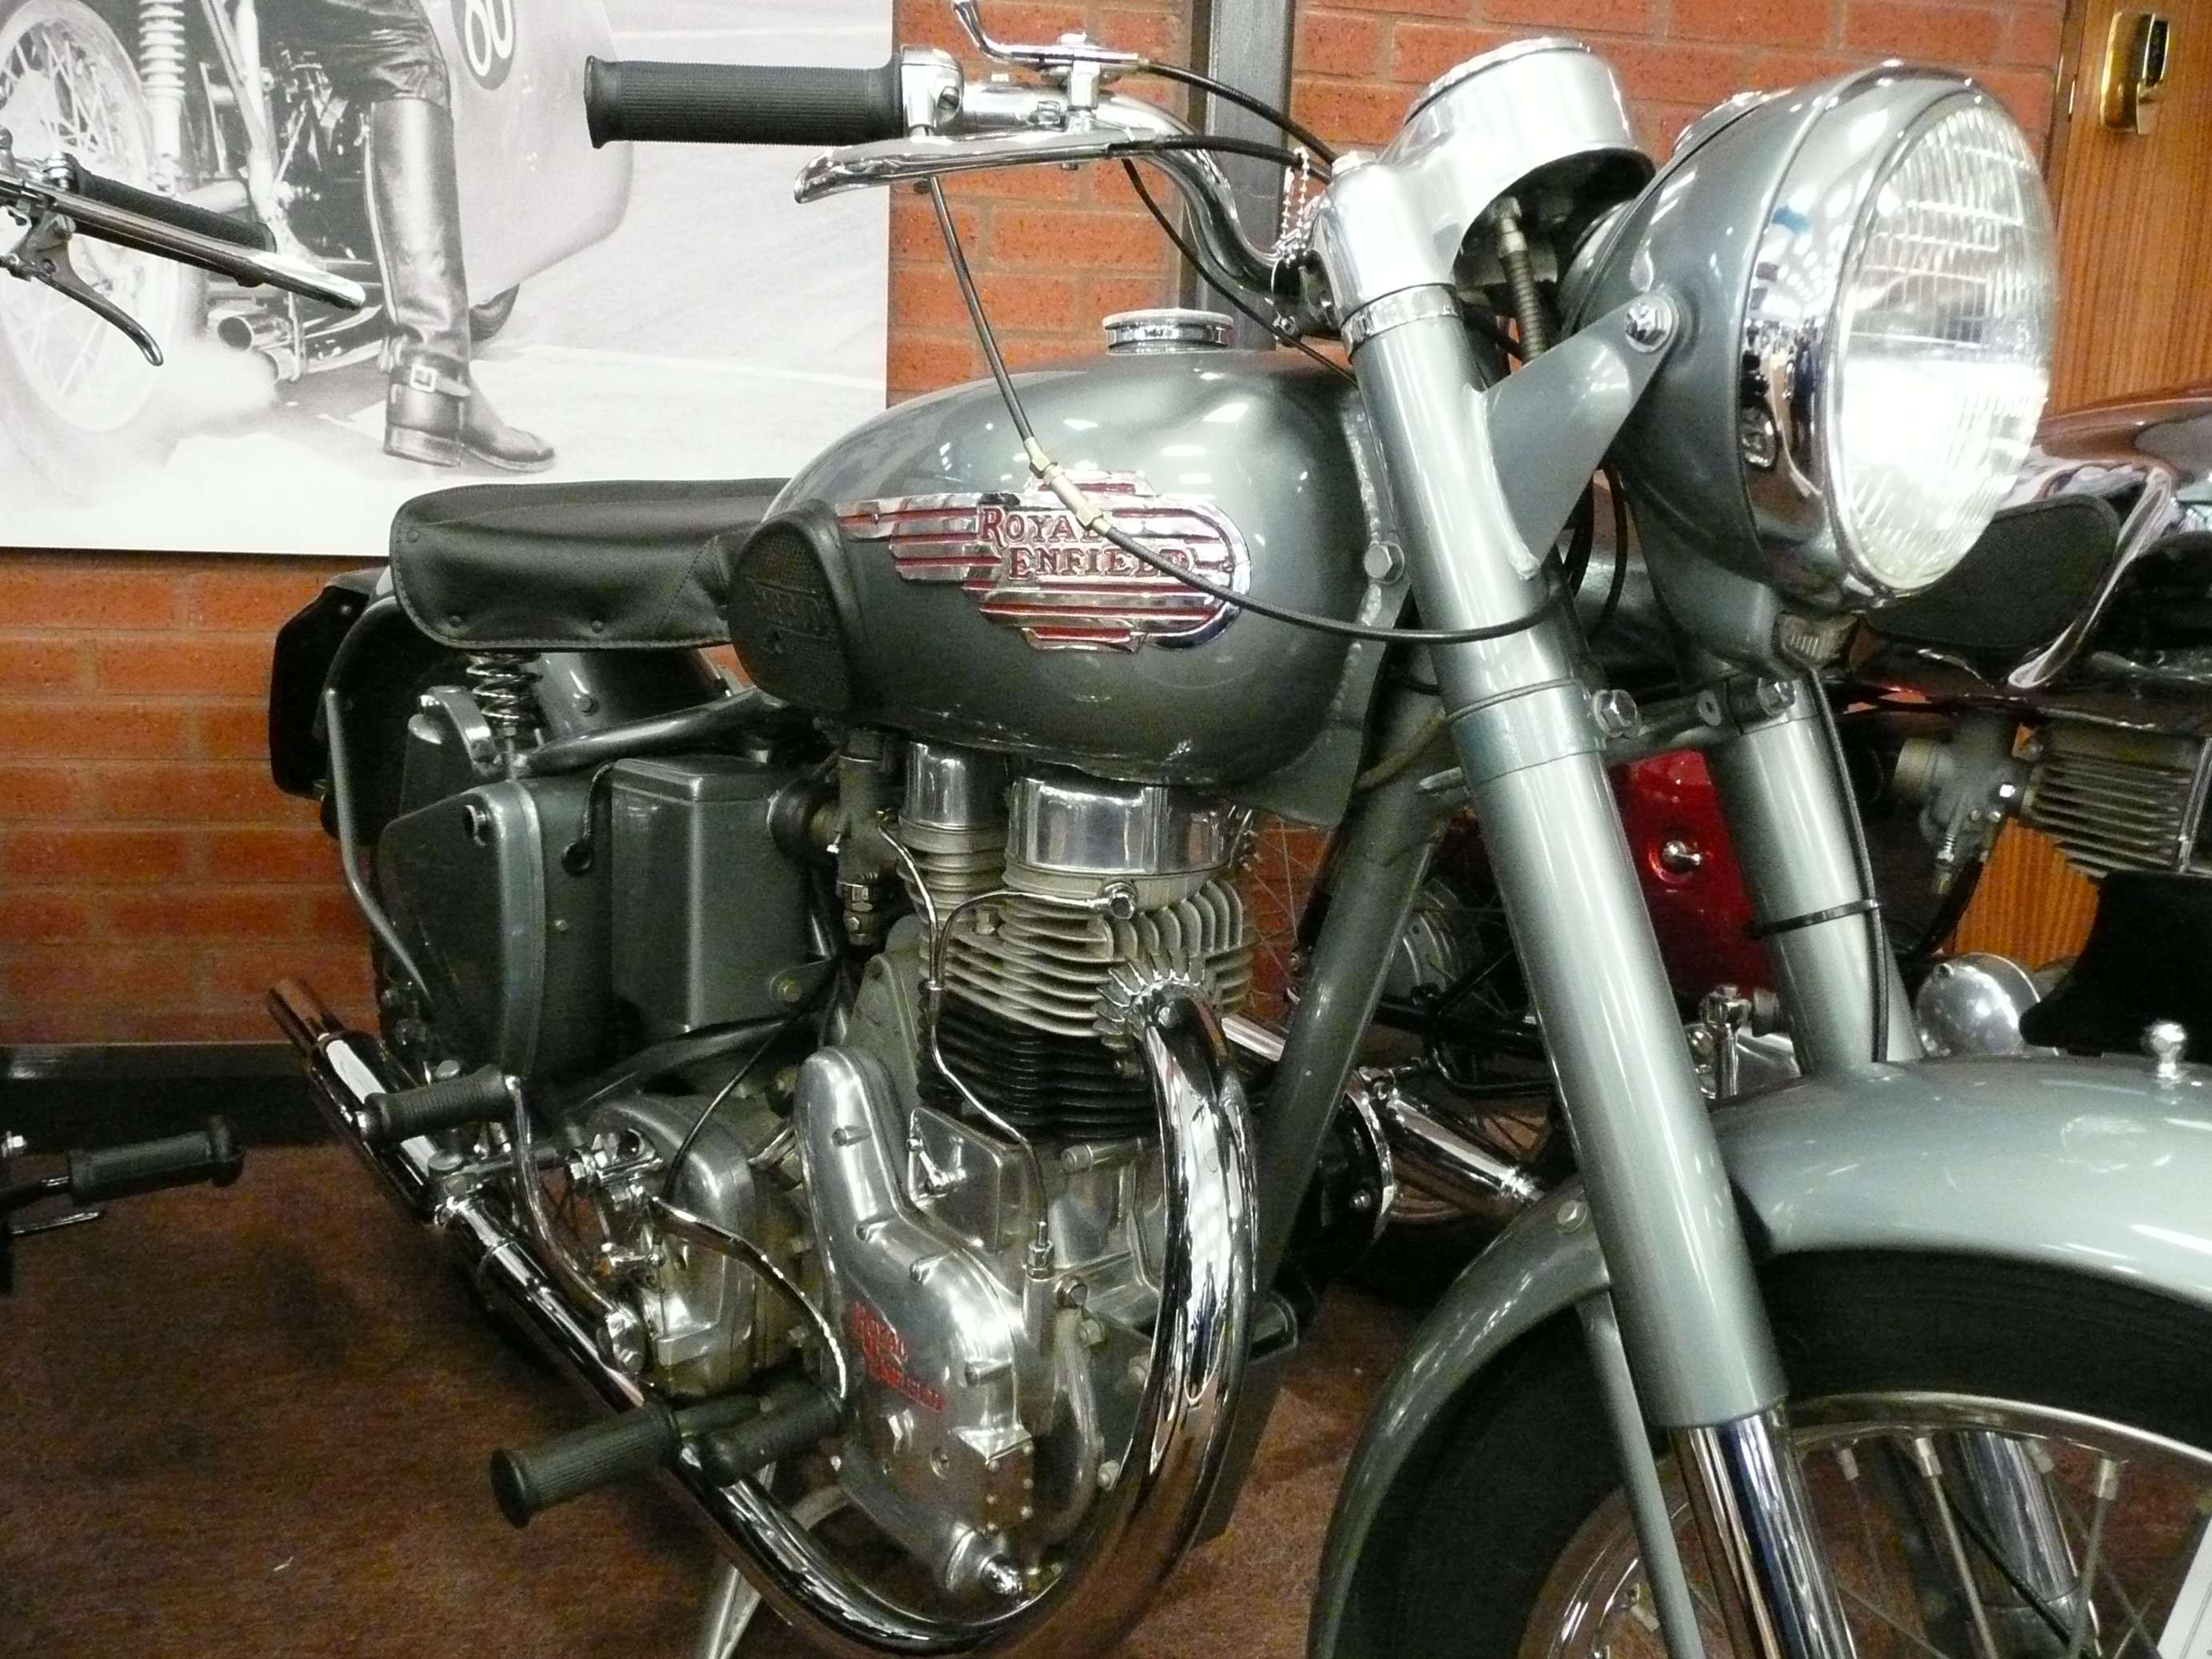 Royal Enfield 350 #9049630